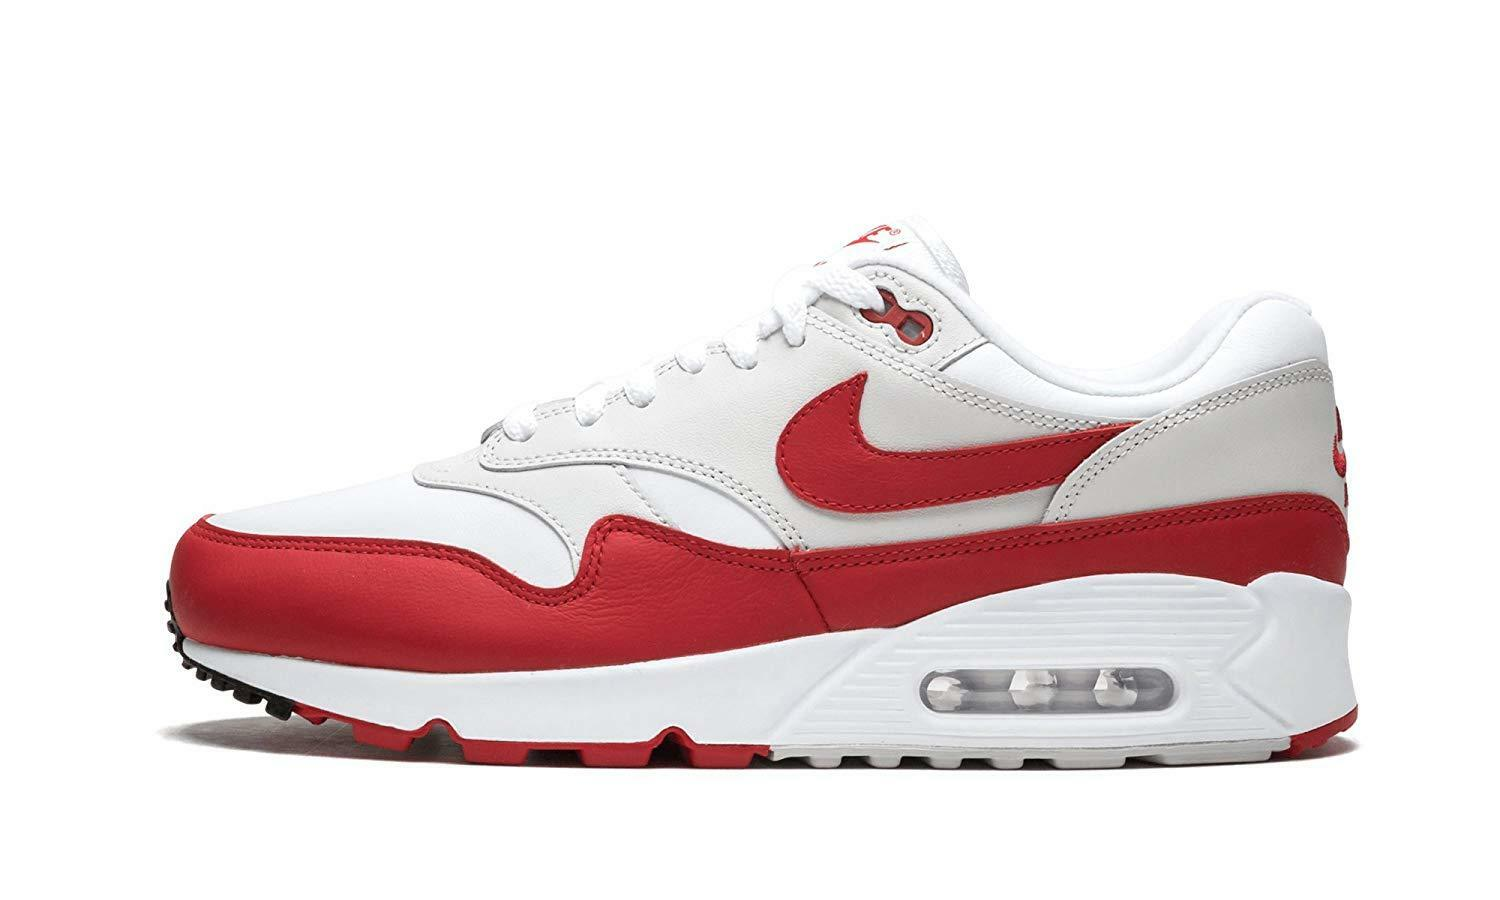 wholesale dealer 992a5 5dc24 Nike Air Max Max Max 90 1 White University Red (AJ7695 100)